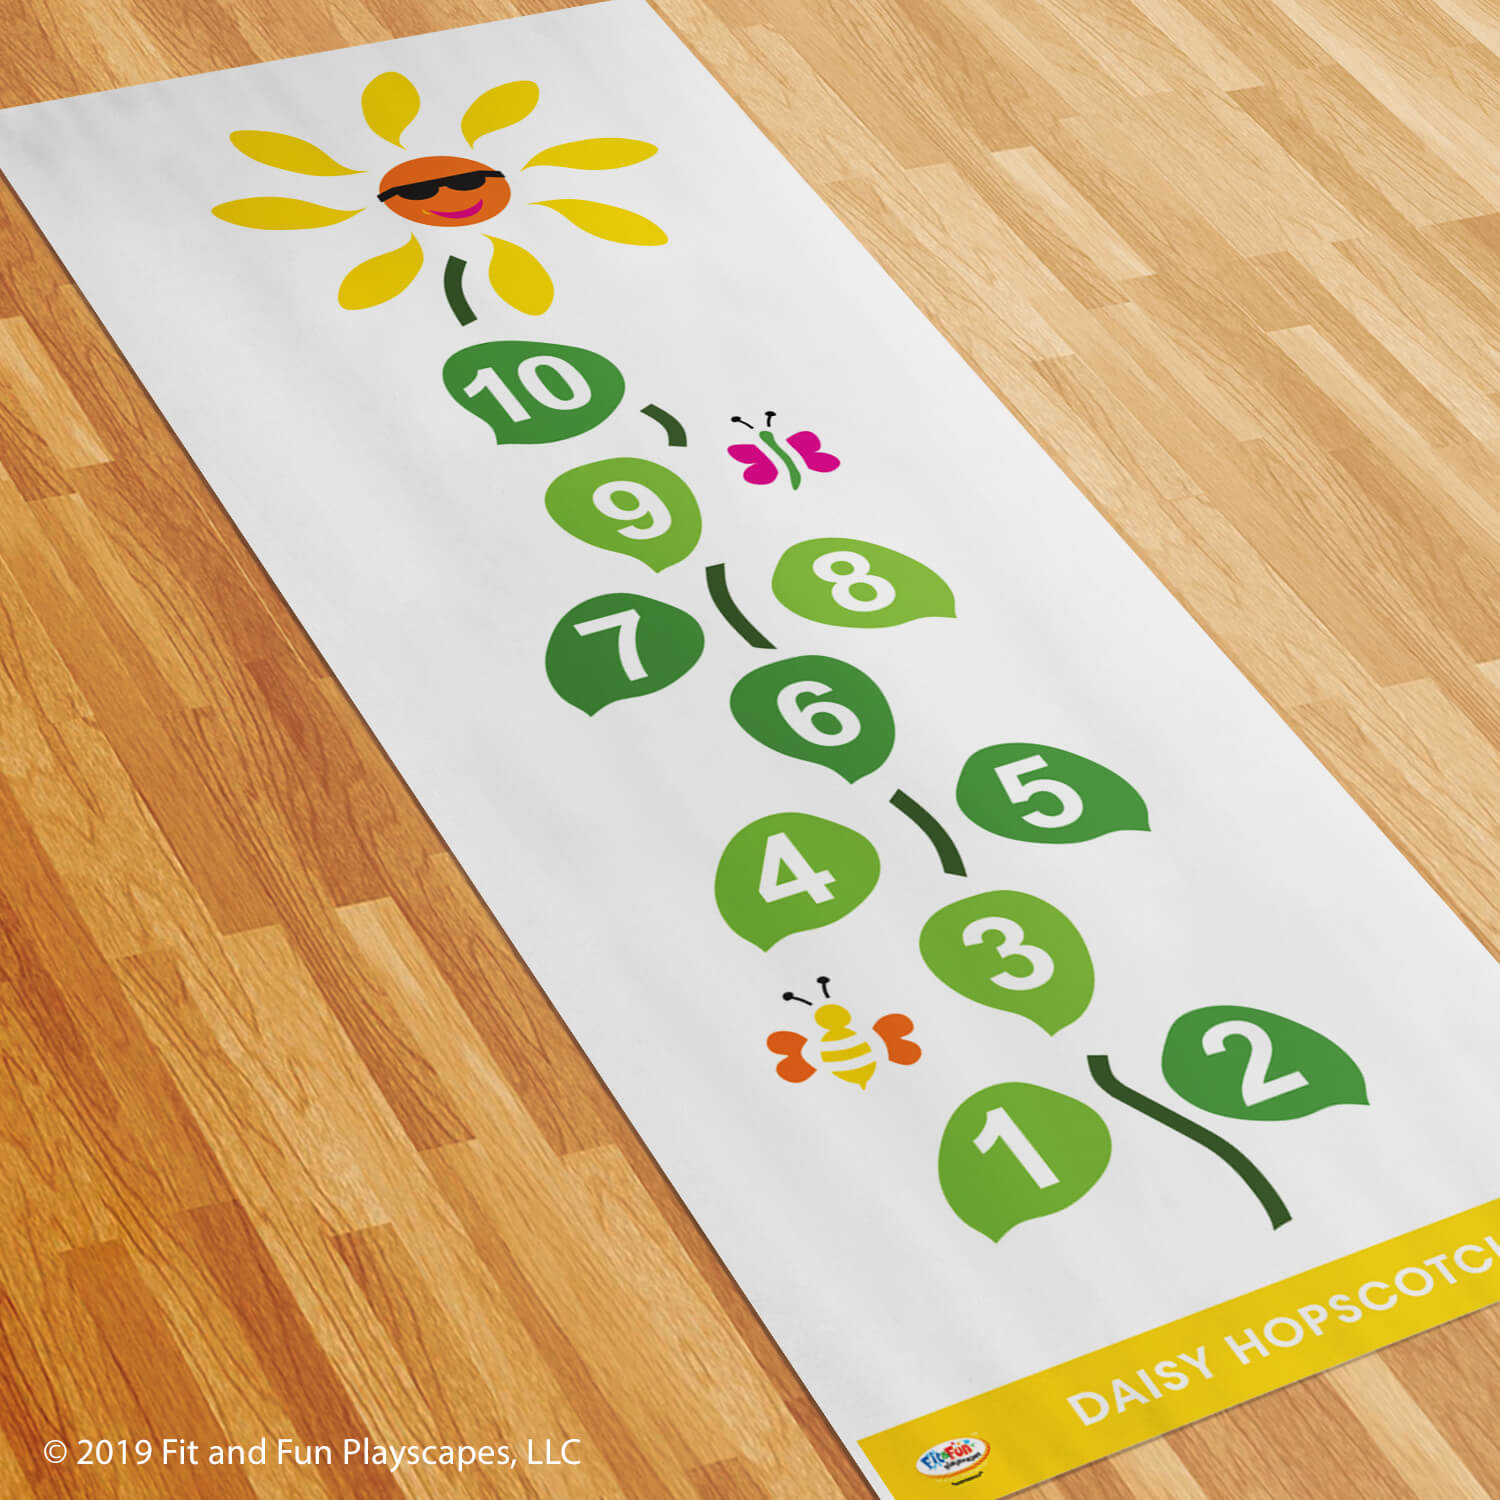 Daisy Hopscotch™ Roll-Out Activity